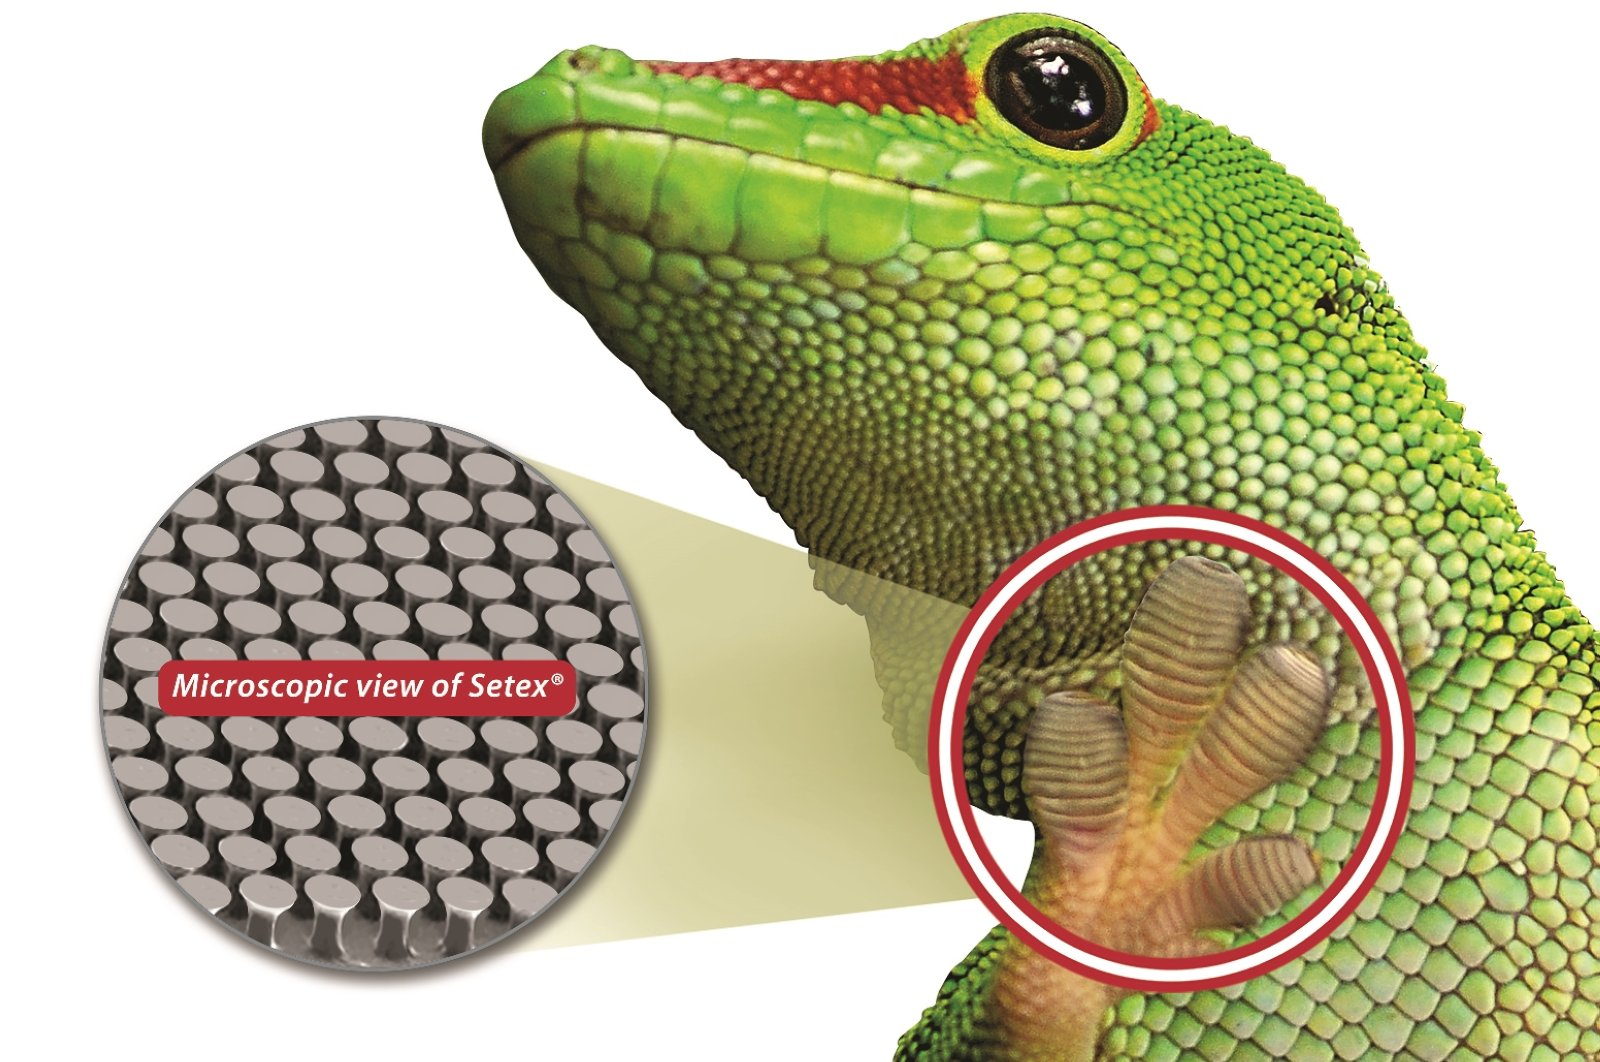 nanoGriptech is the first commercial manufacturer of gecko-inspired micro-structured dry adhesive ad surfaces for a wide range of applications.